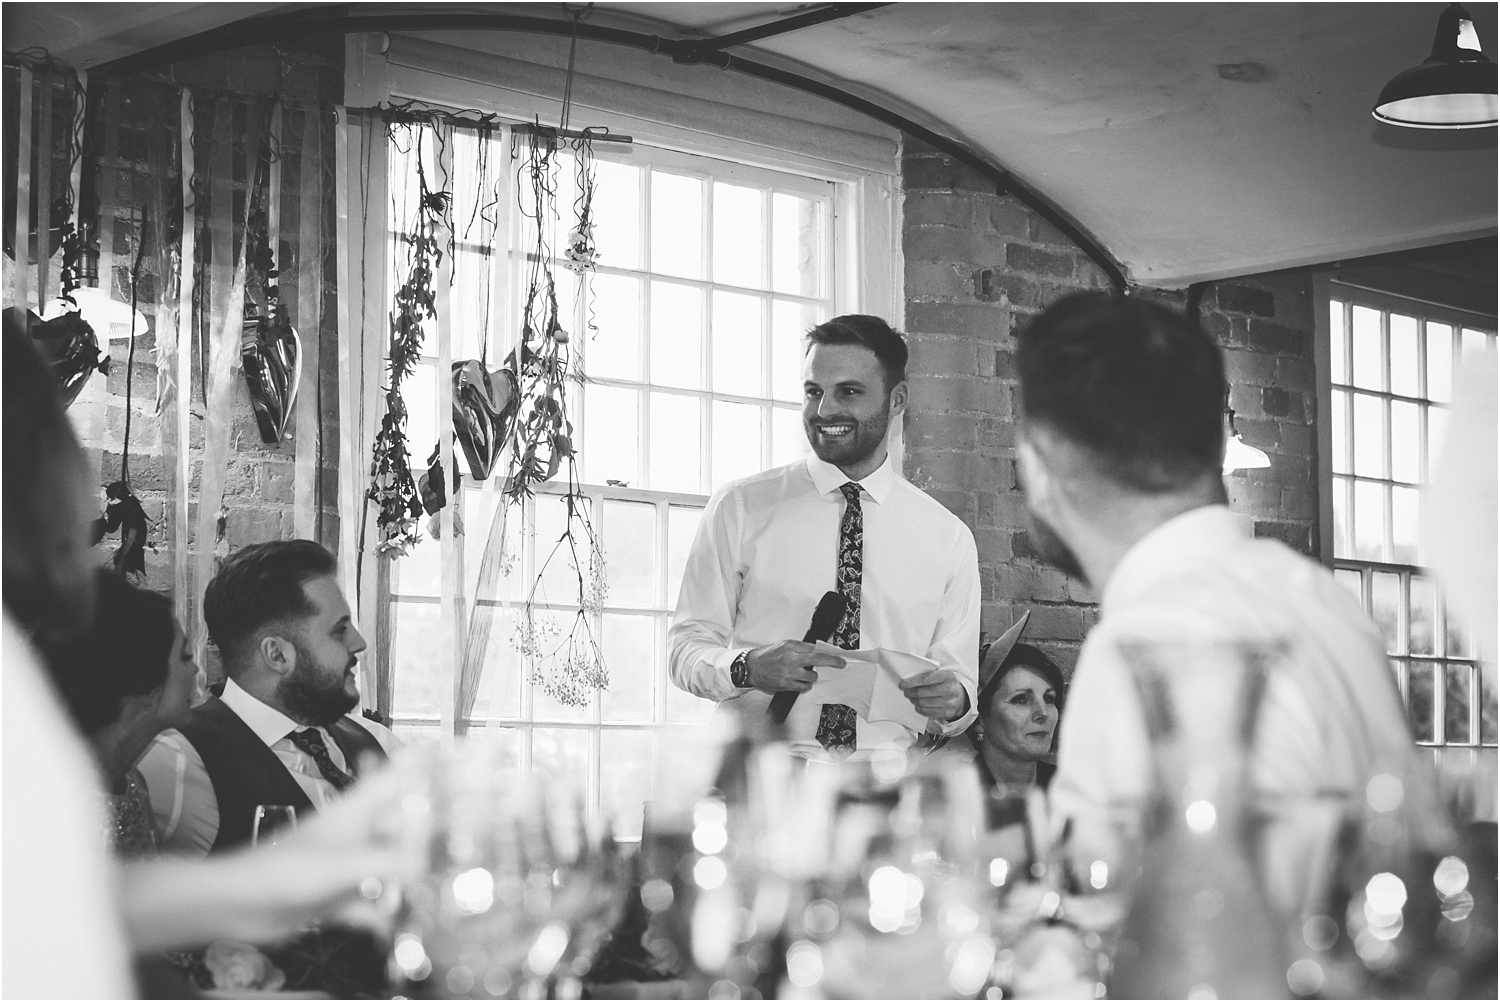 Victoria-Ben-The-West-Mill-darley-abbey-natural-relaxed-documentary-wedding-photography-photographer-Derby-Nottingham-Derbyshire-Nottinghamshire-Leicestershire-Lincolnshire-East-Midlands_0089.jpg